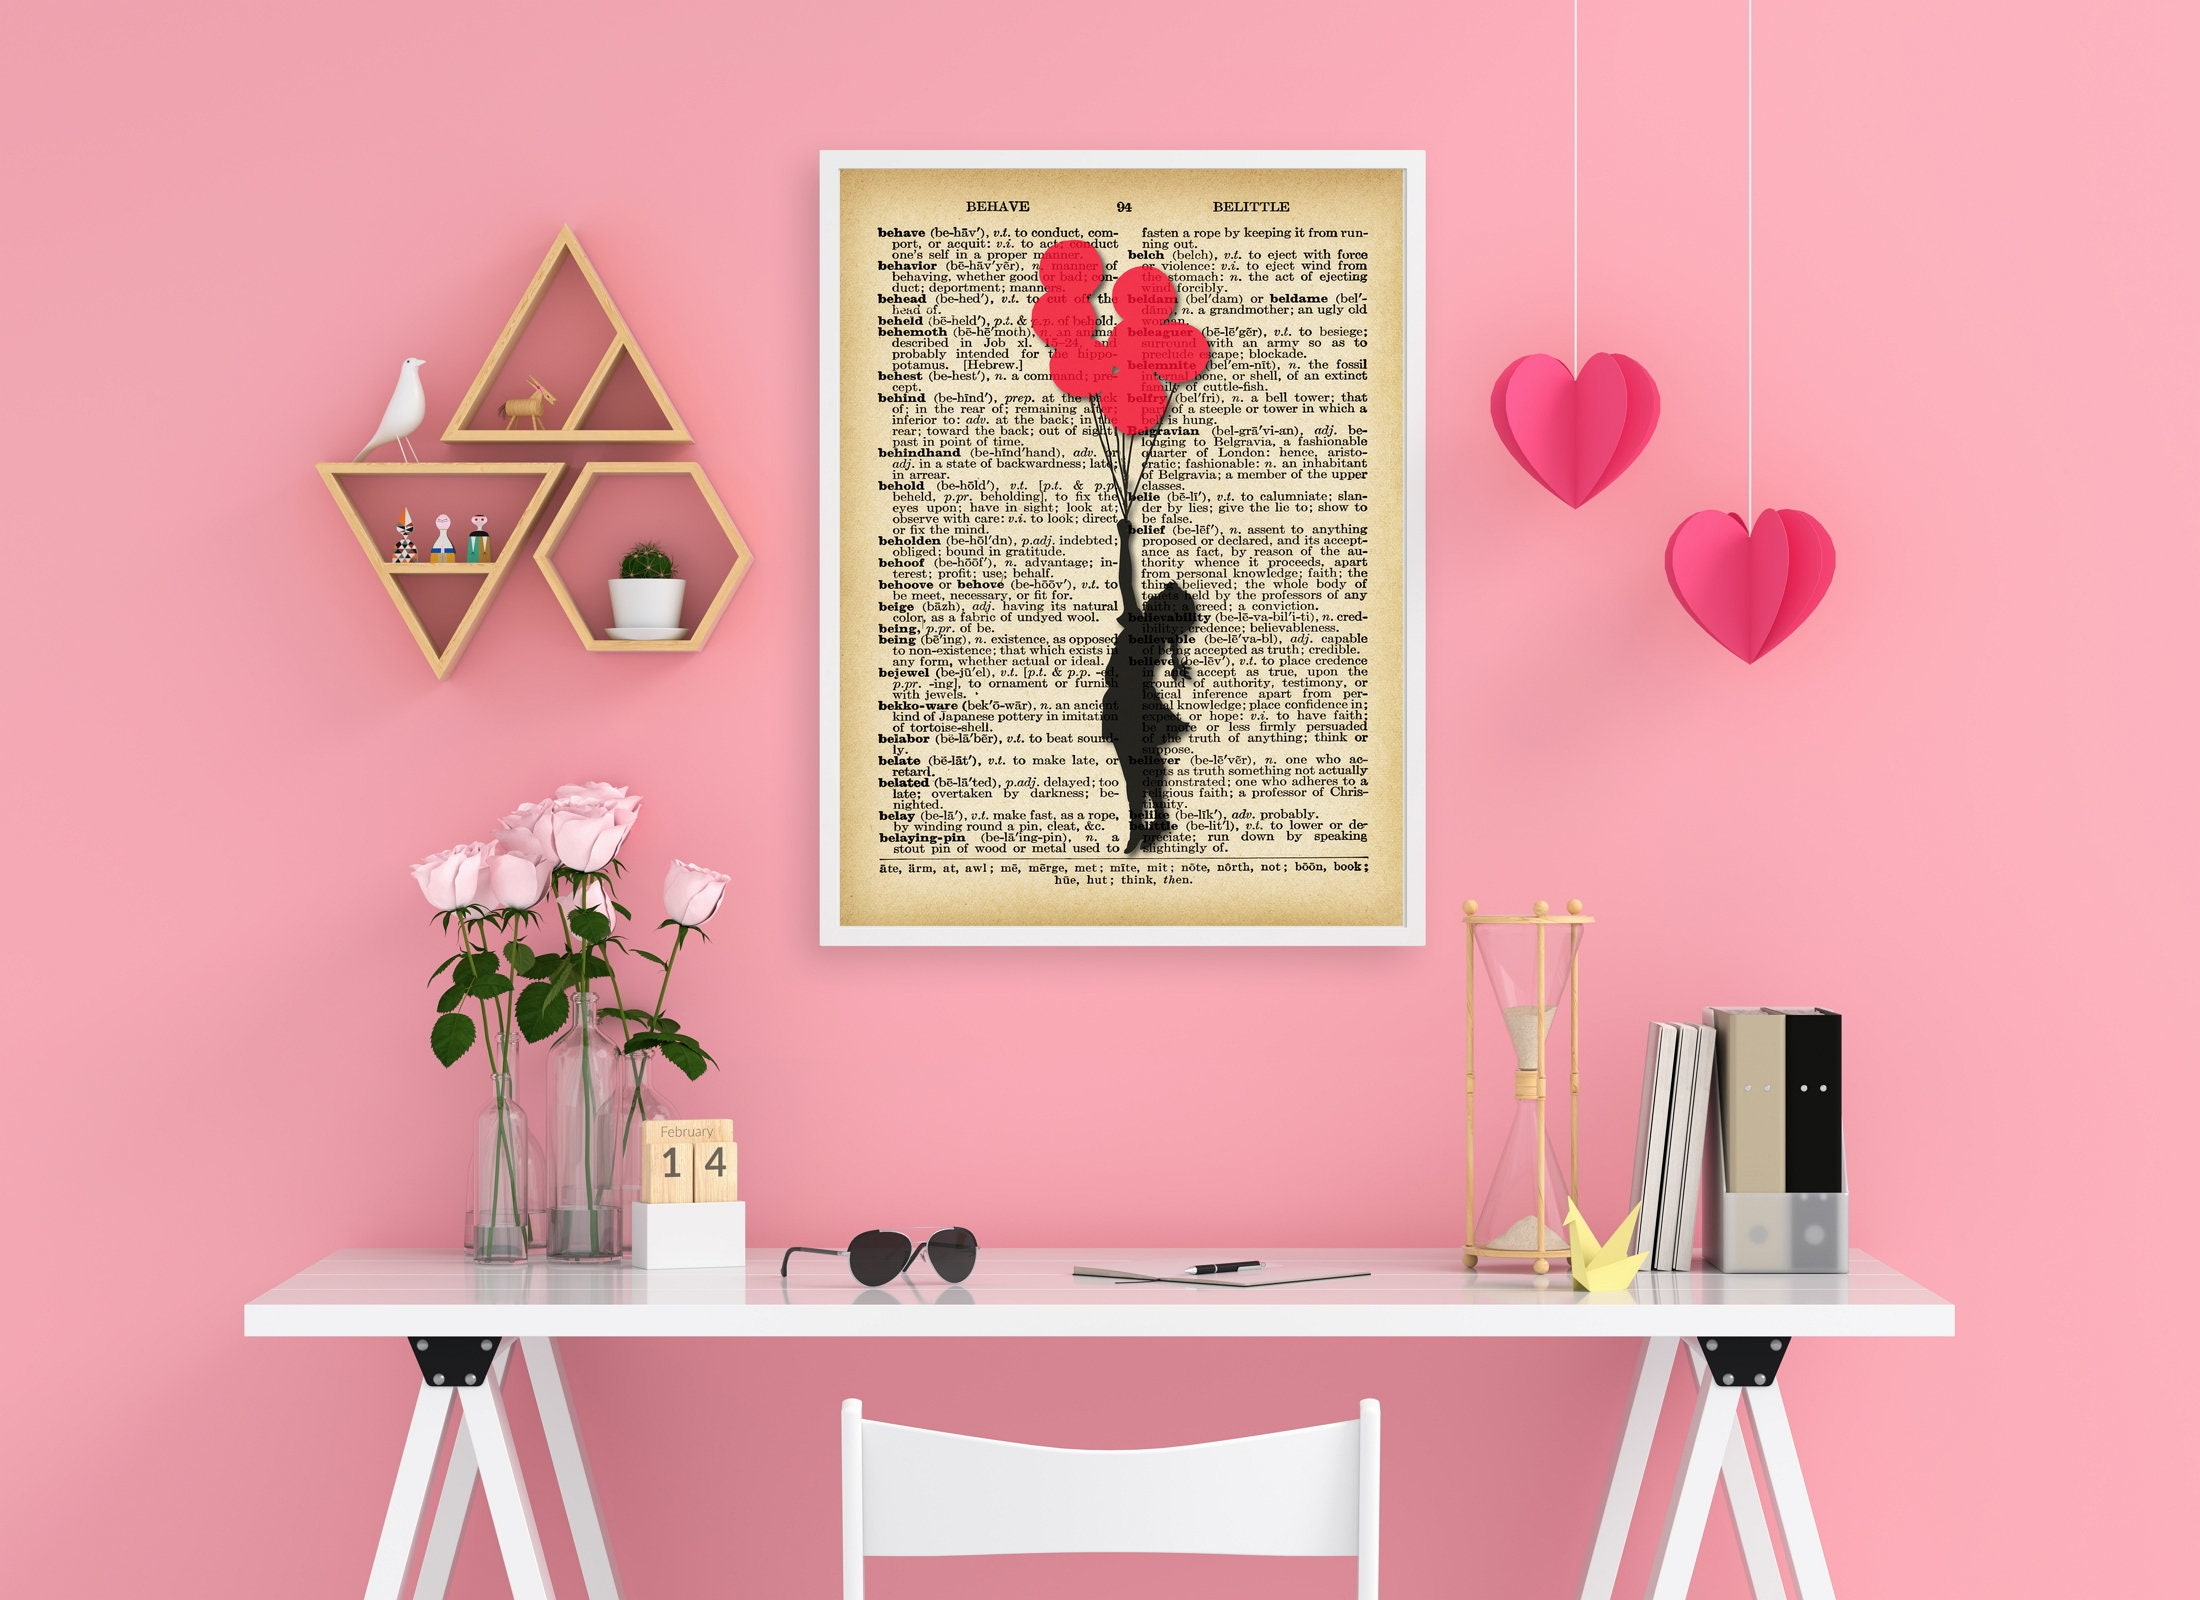 Banksy Wall Art - Girl flying away with Balloons - Dictionary Art Banksy Print-  Angel showering love Red hearts Vintage Wall Decor